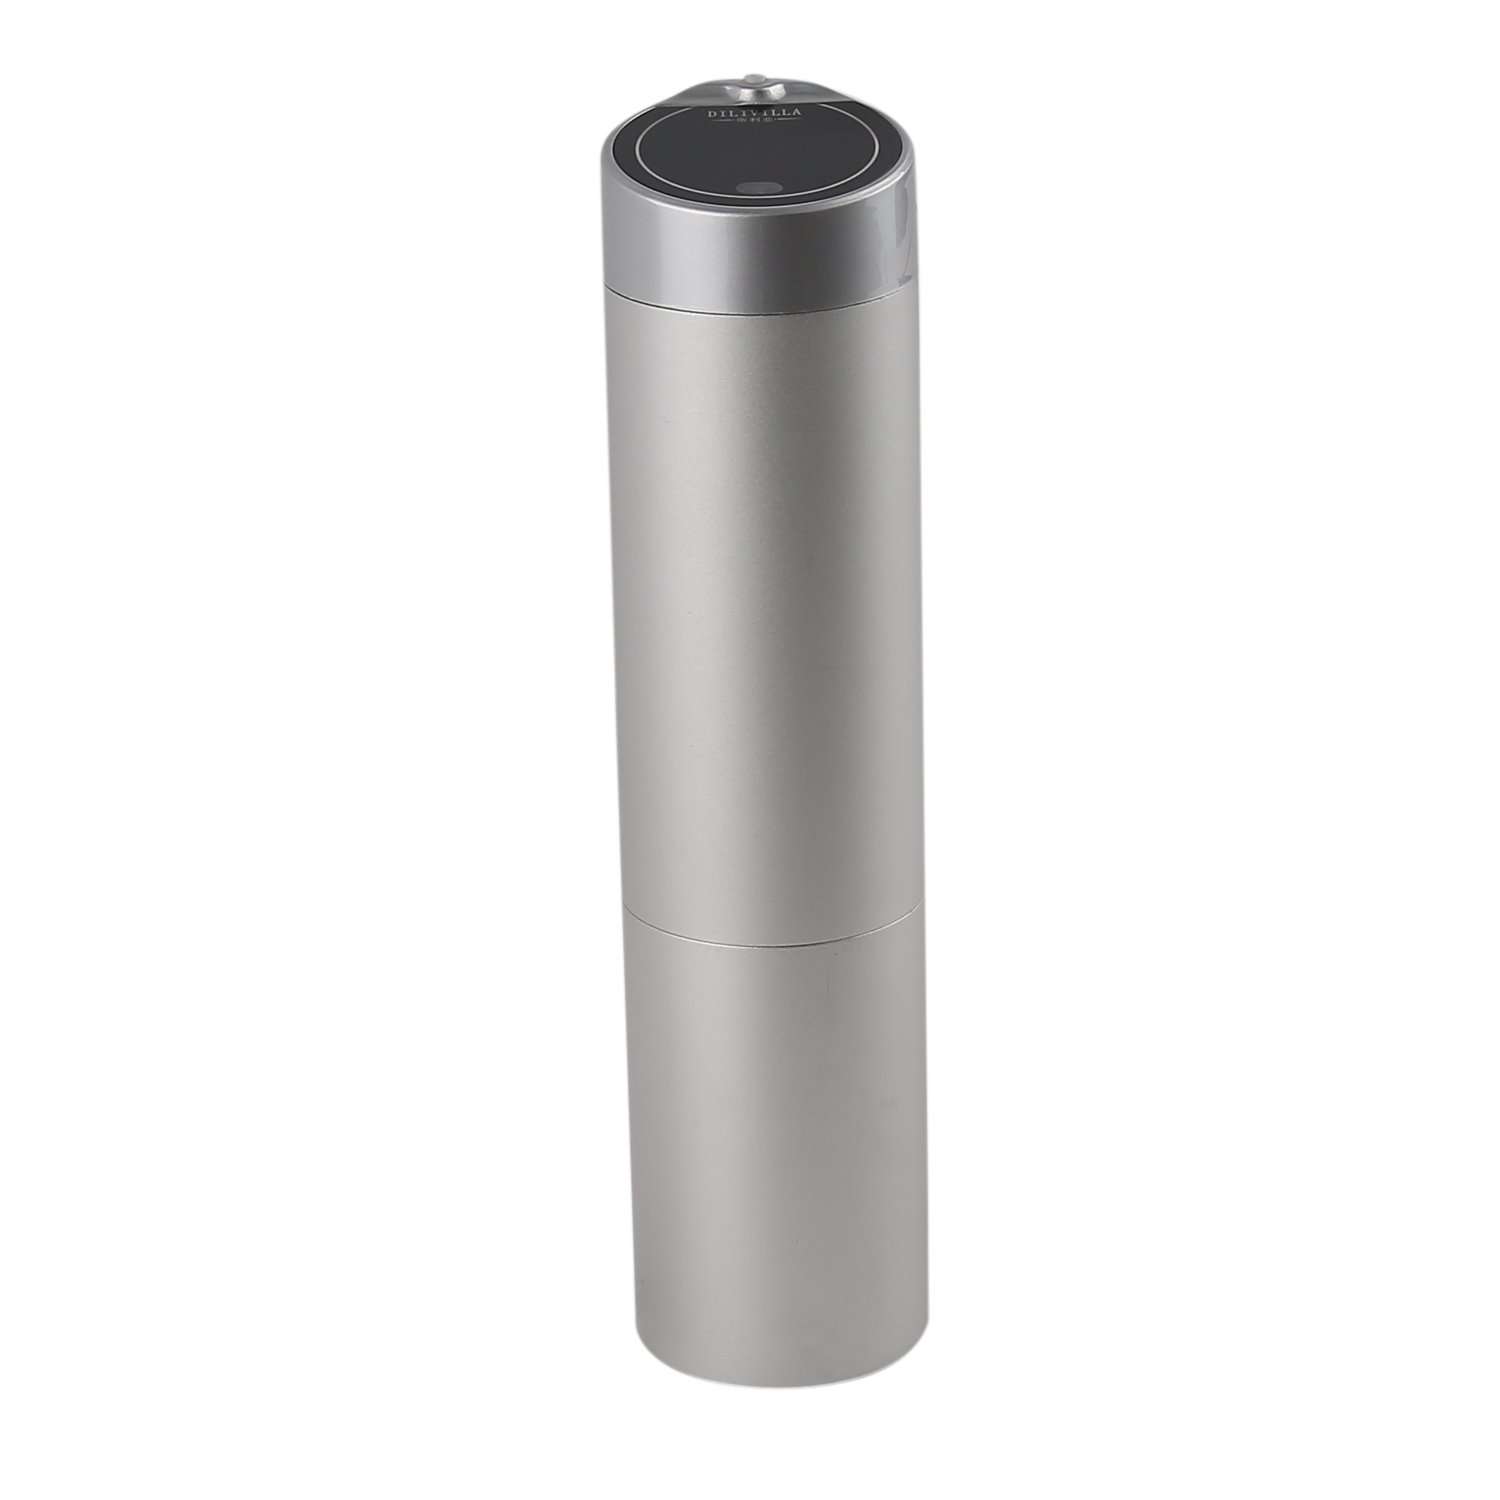 Hiliss Ultrasonic Strong Mist Aroma Diffuser Air Machine Electric Scent Diffuser Essential Oil Sprayer (Silver)